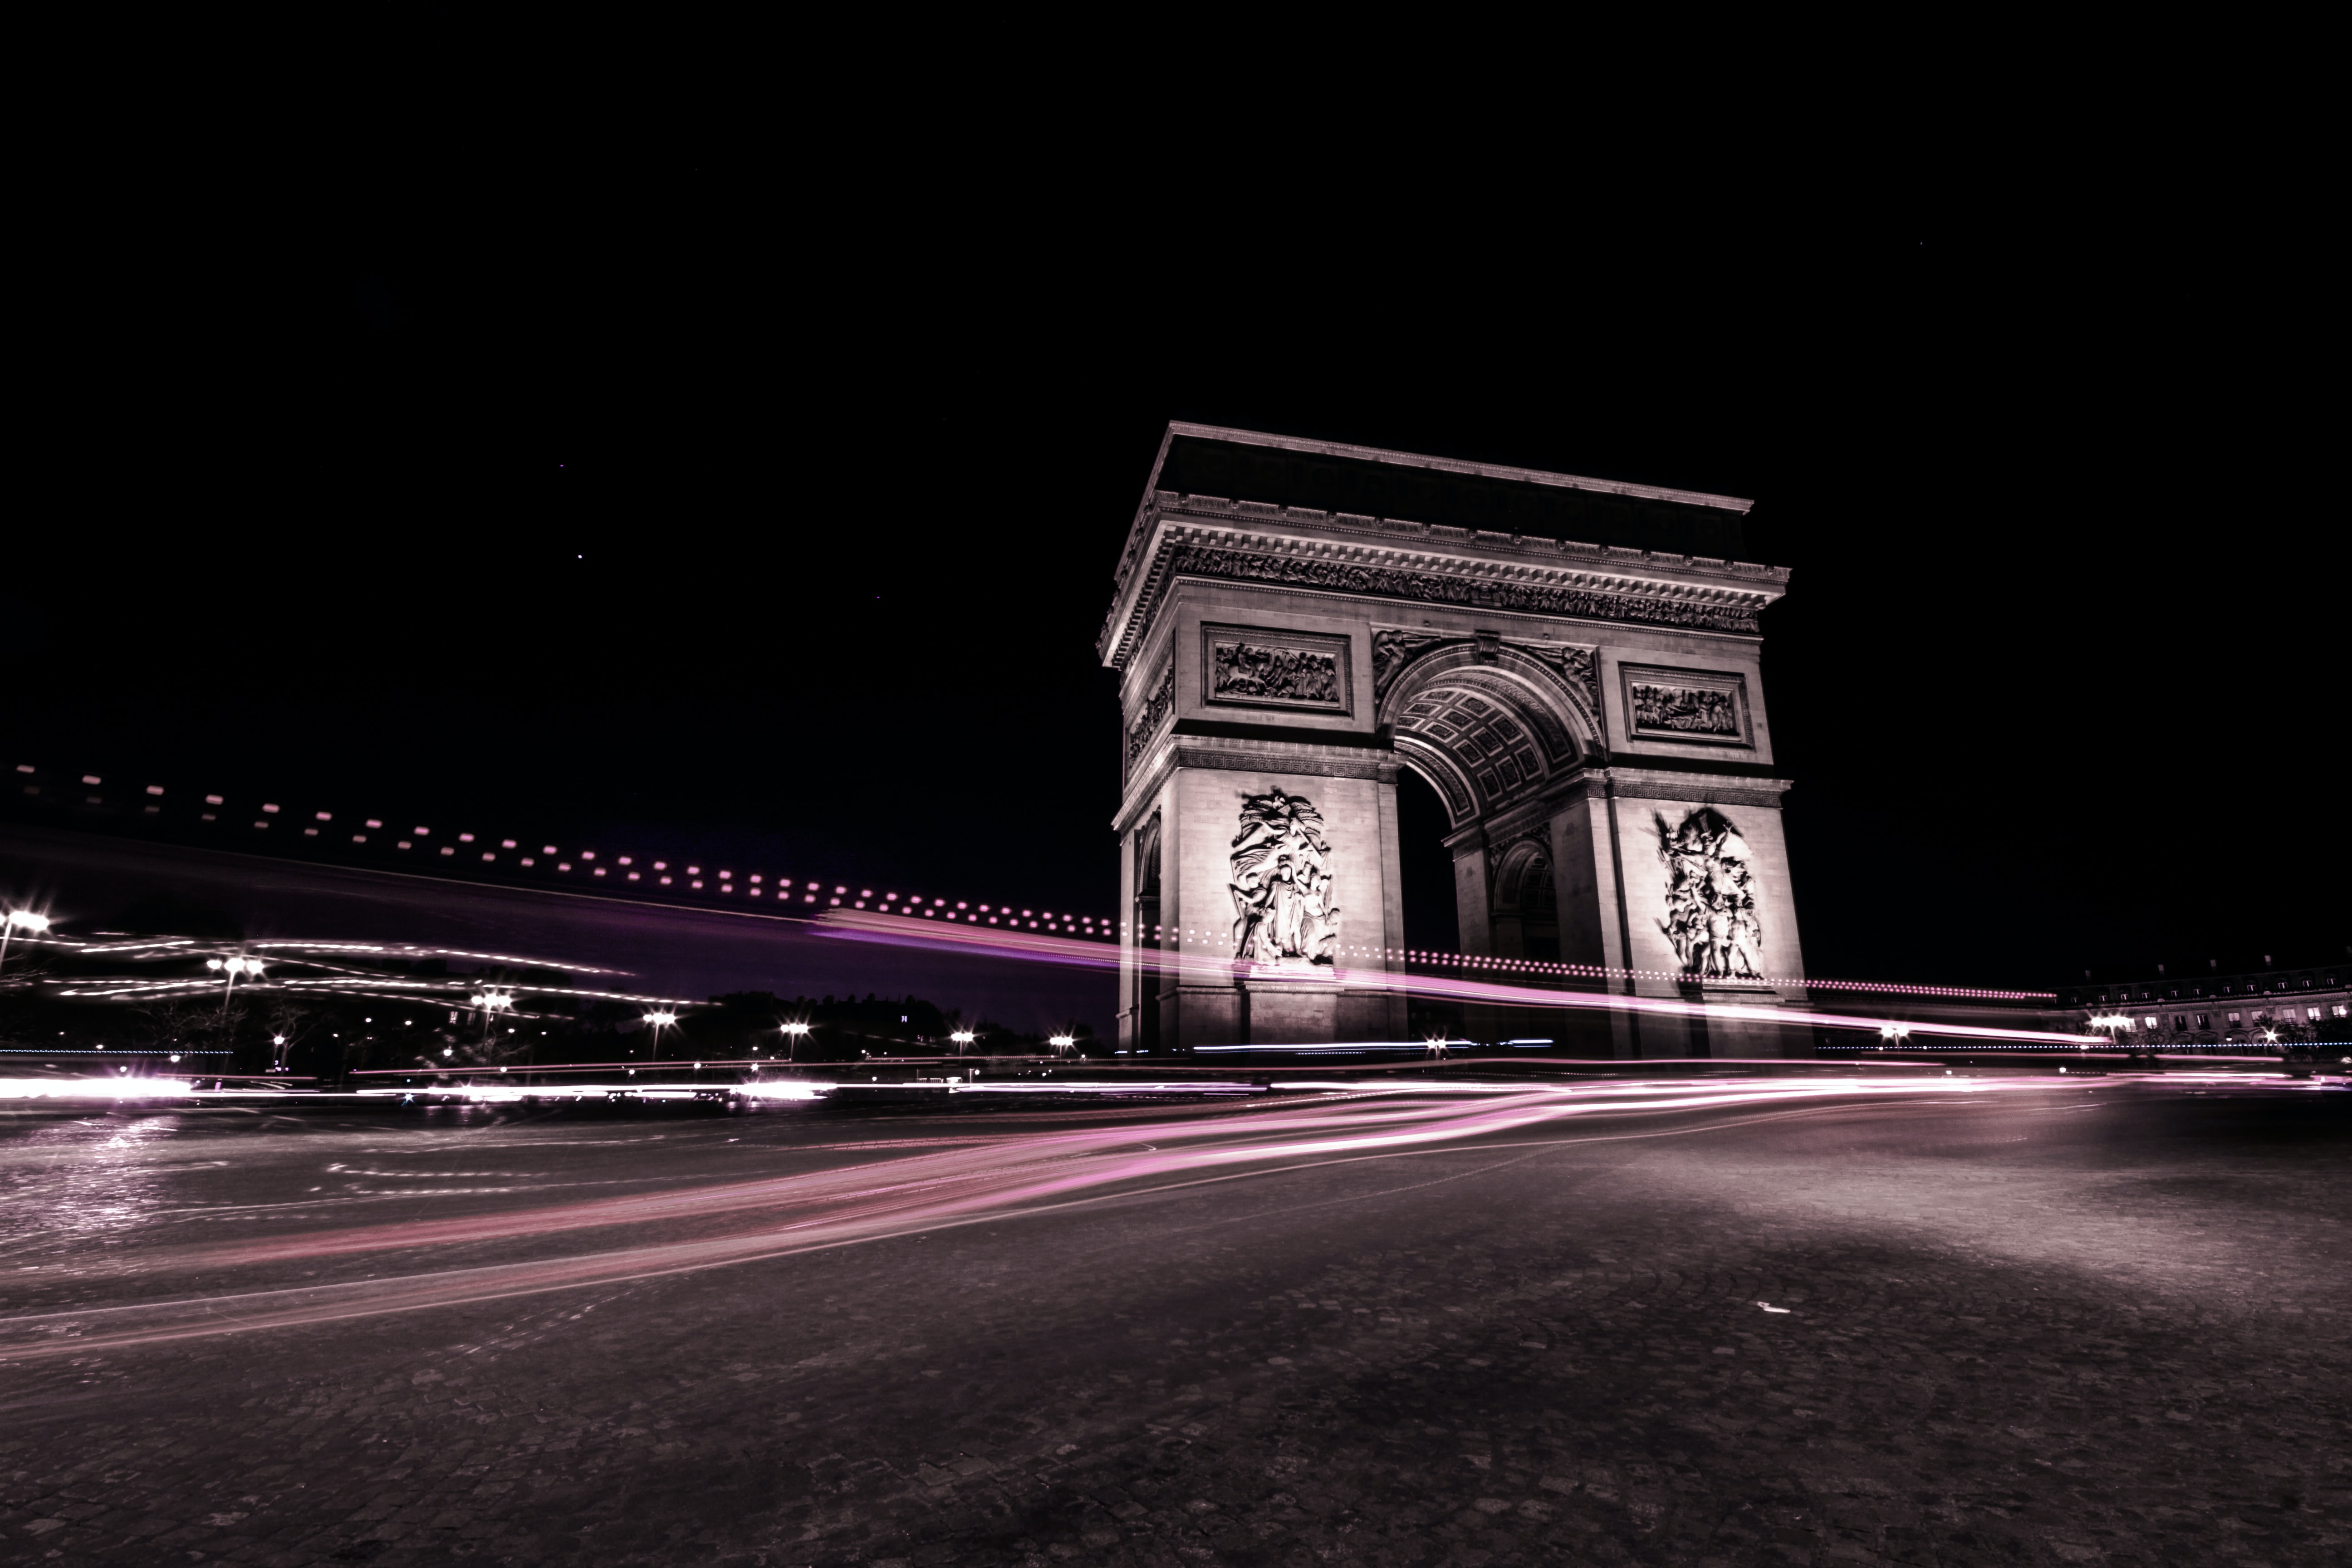 time-lapse photography of Arc de Triomphe, Paris France